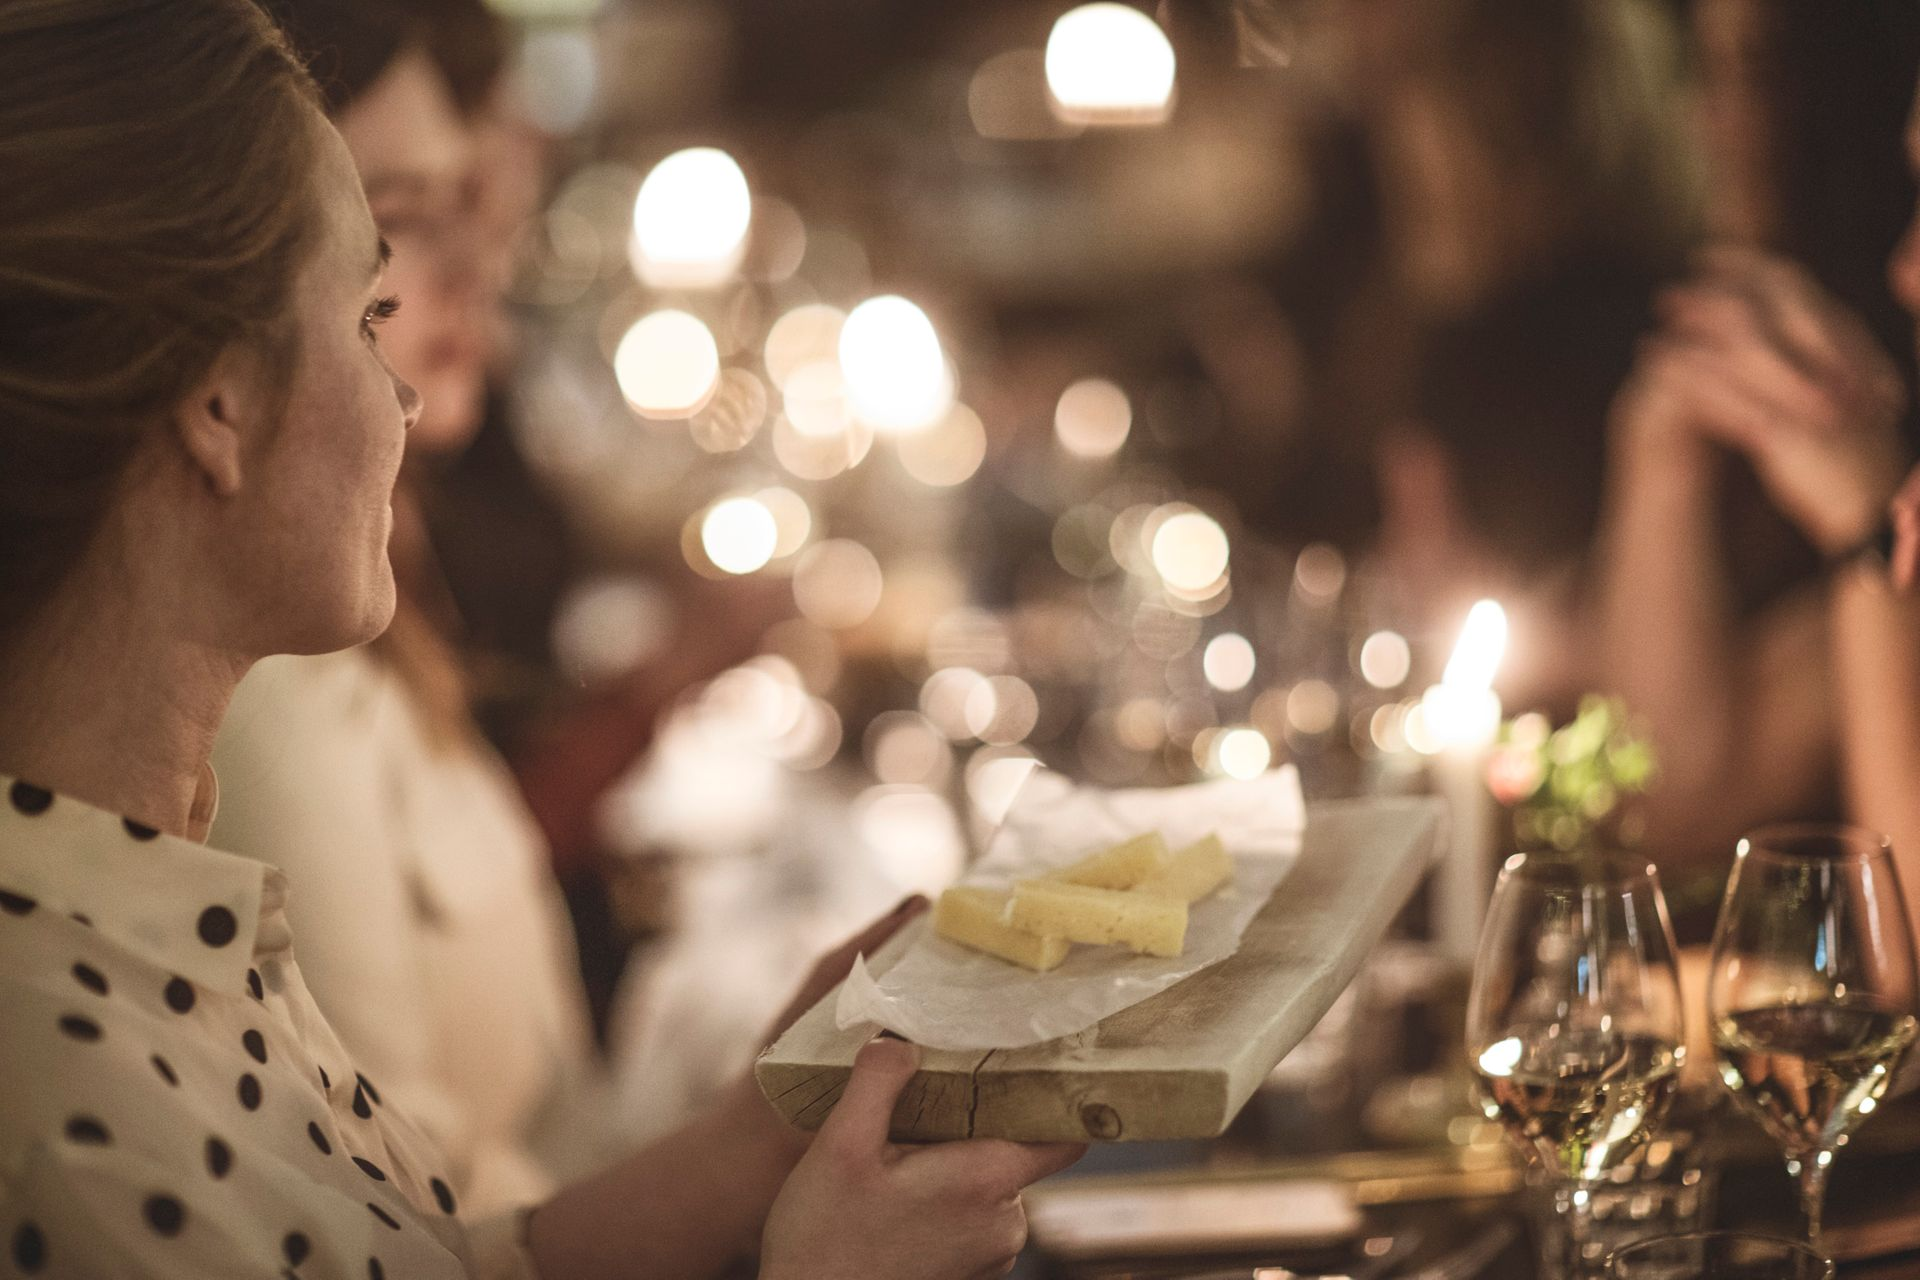 A woman holding a cheese board and in the blurry background you see people and lights